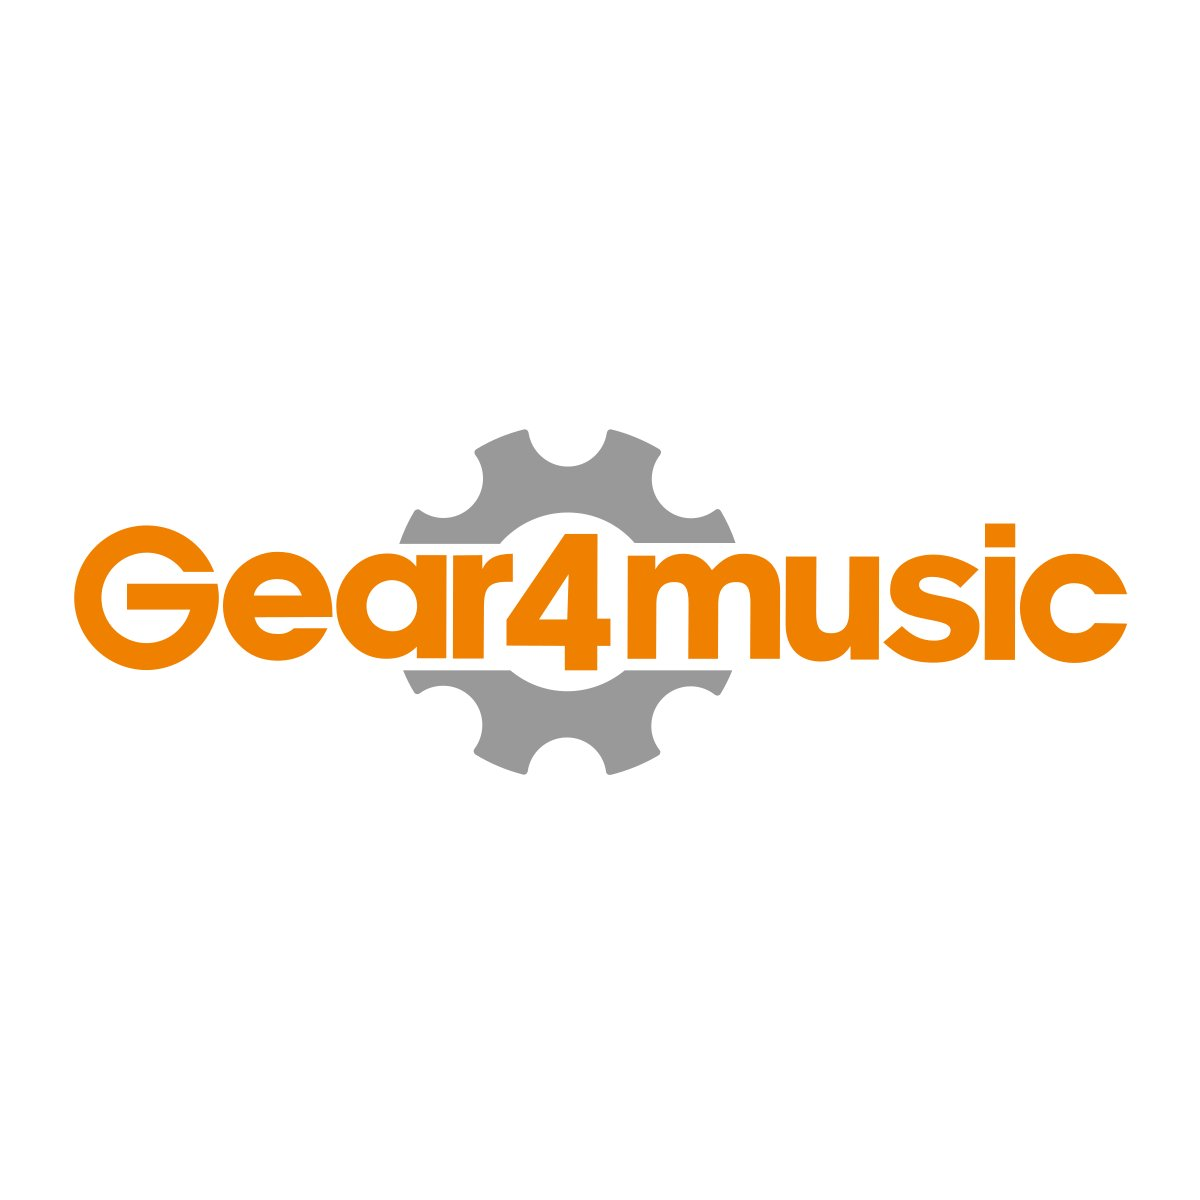 Mellofoon door Gear4music